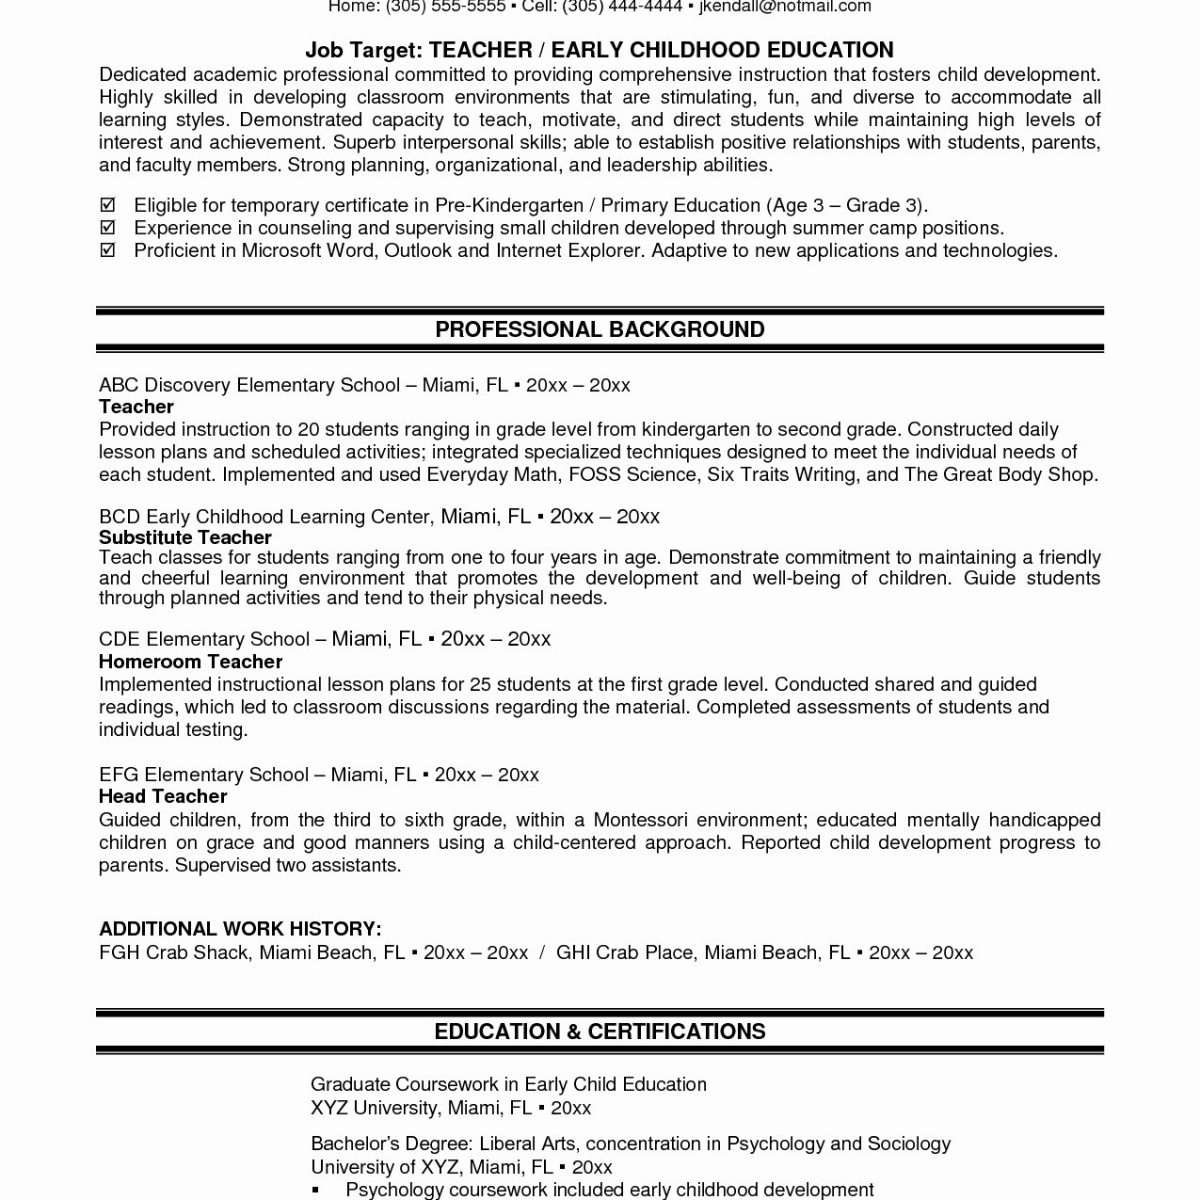 Microsoft Word Templates Resume - 36 Cute Writing An Effective Resume Gallery Y2g